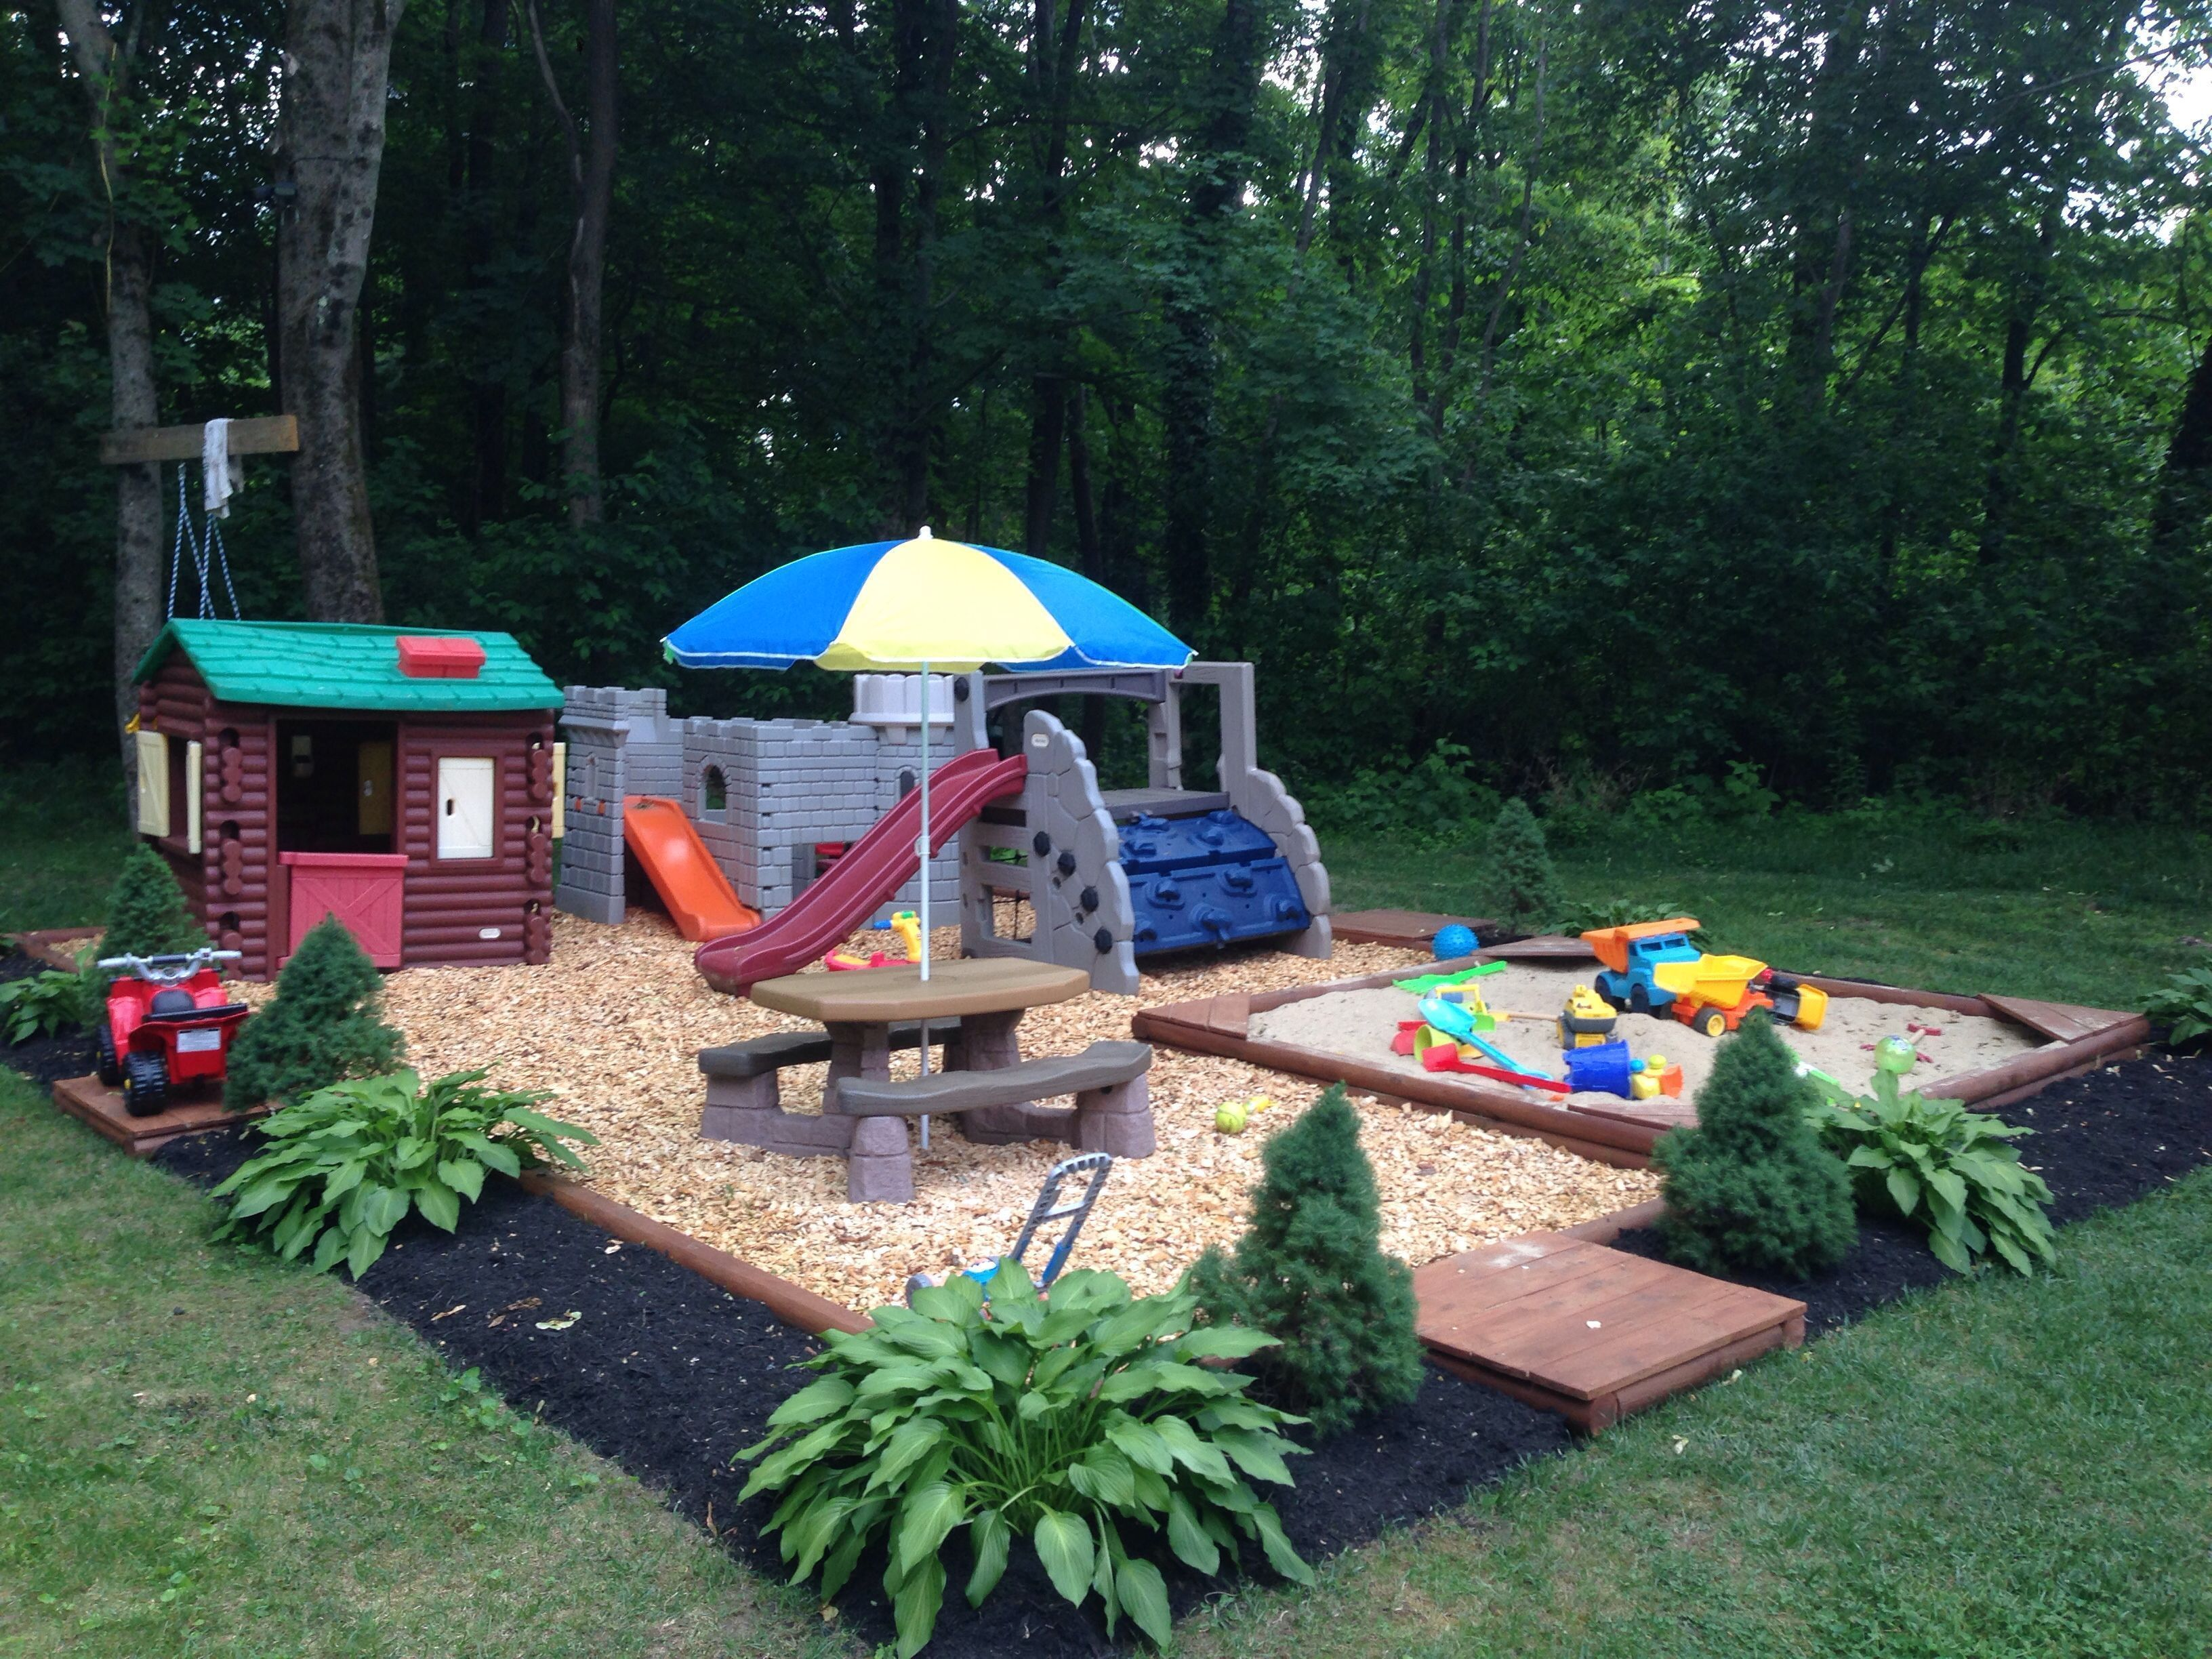 Gardens Without Grass Ideas Backyards Gardens Without Grass Ideas In 2020 Play Area Backyard Backyard Play Kid Friendly Backyard